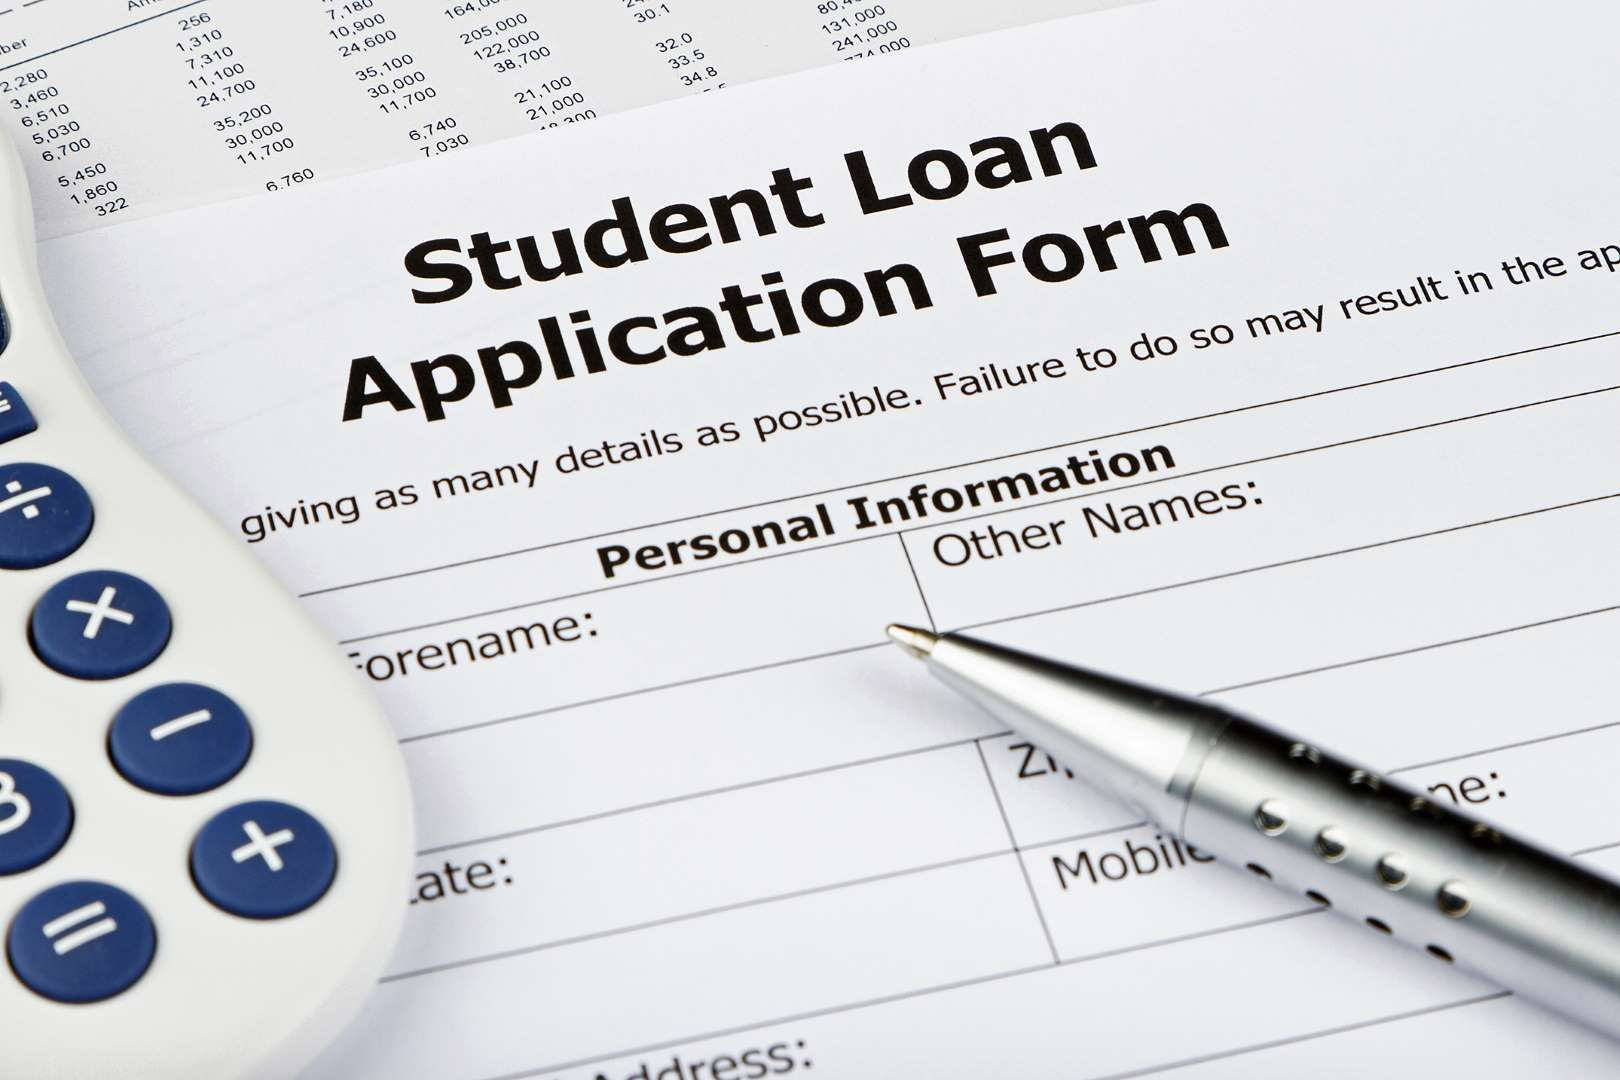 Student Loan Application Form  Nigel CarseGetty Images  Life